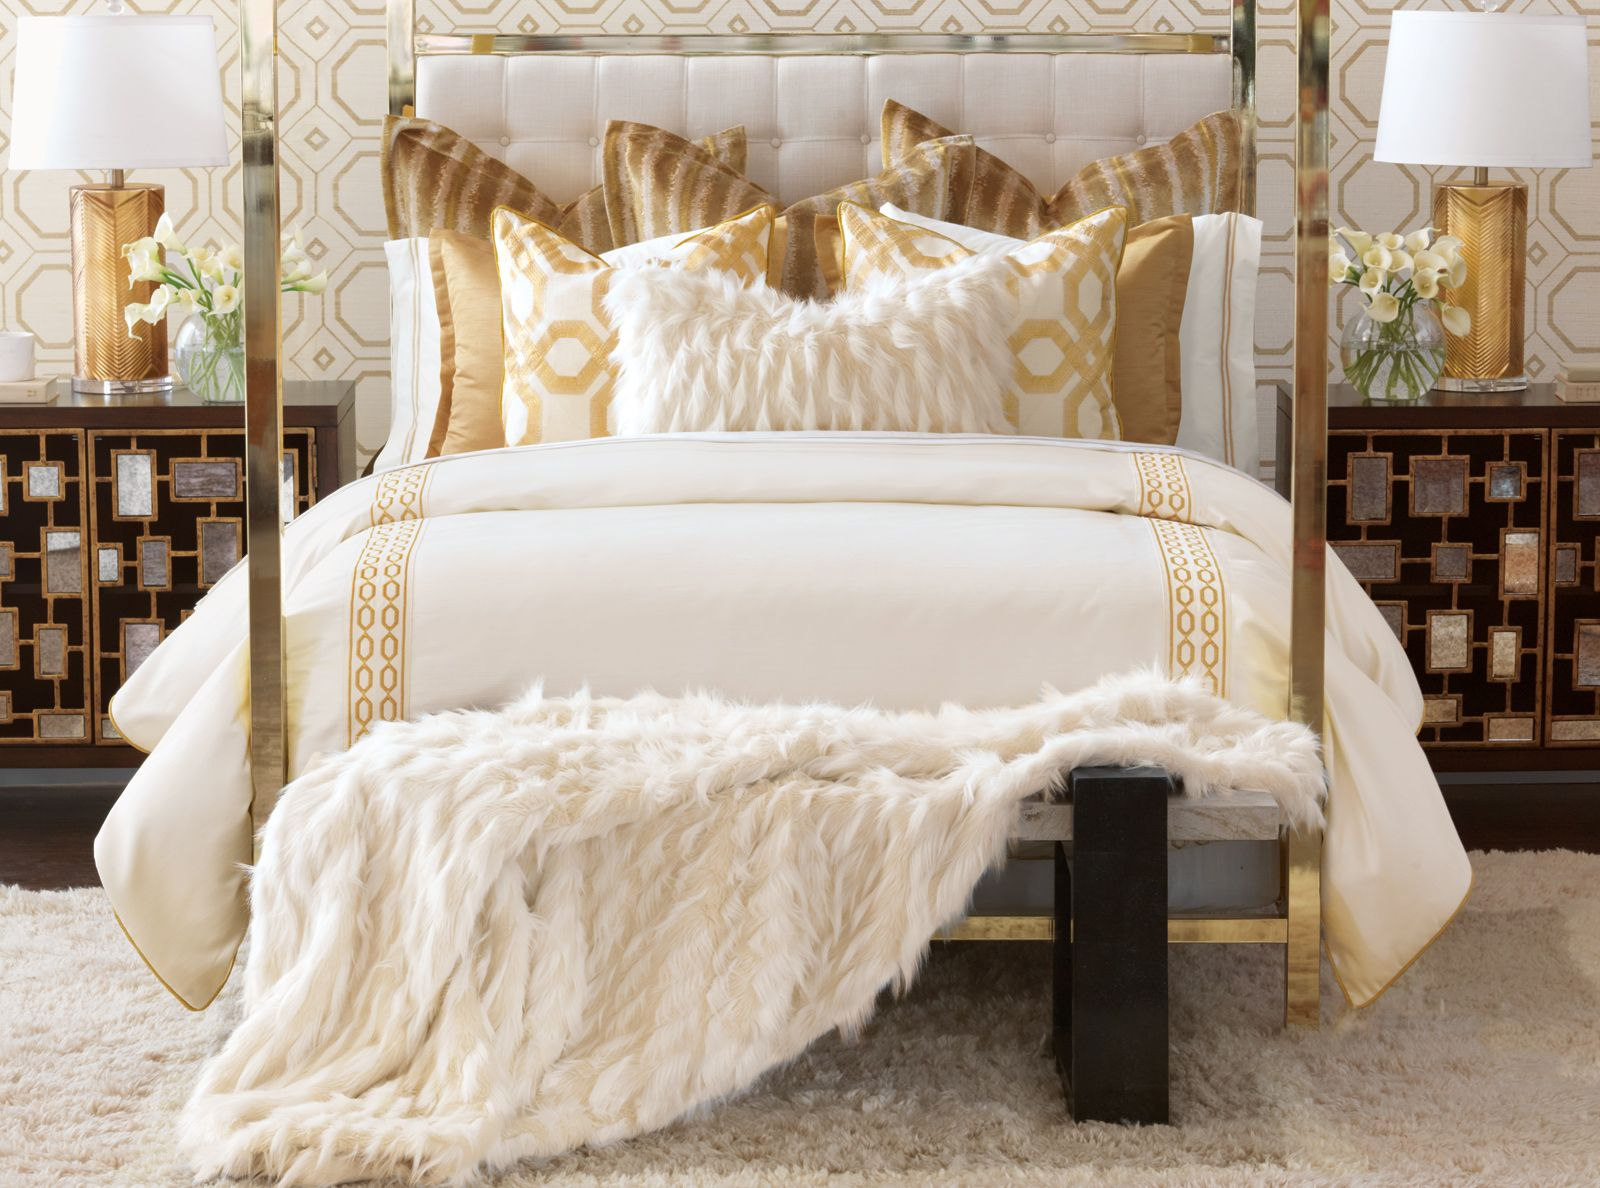 Barclay Butera Luxury Bedding by Eastern Accents - Luxe Collection ...